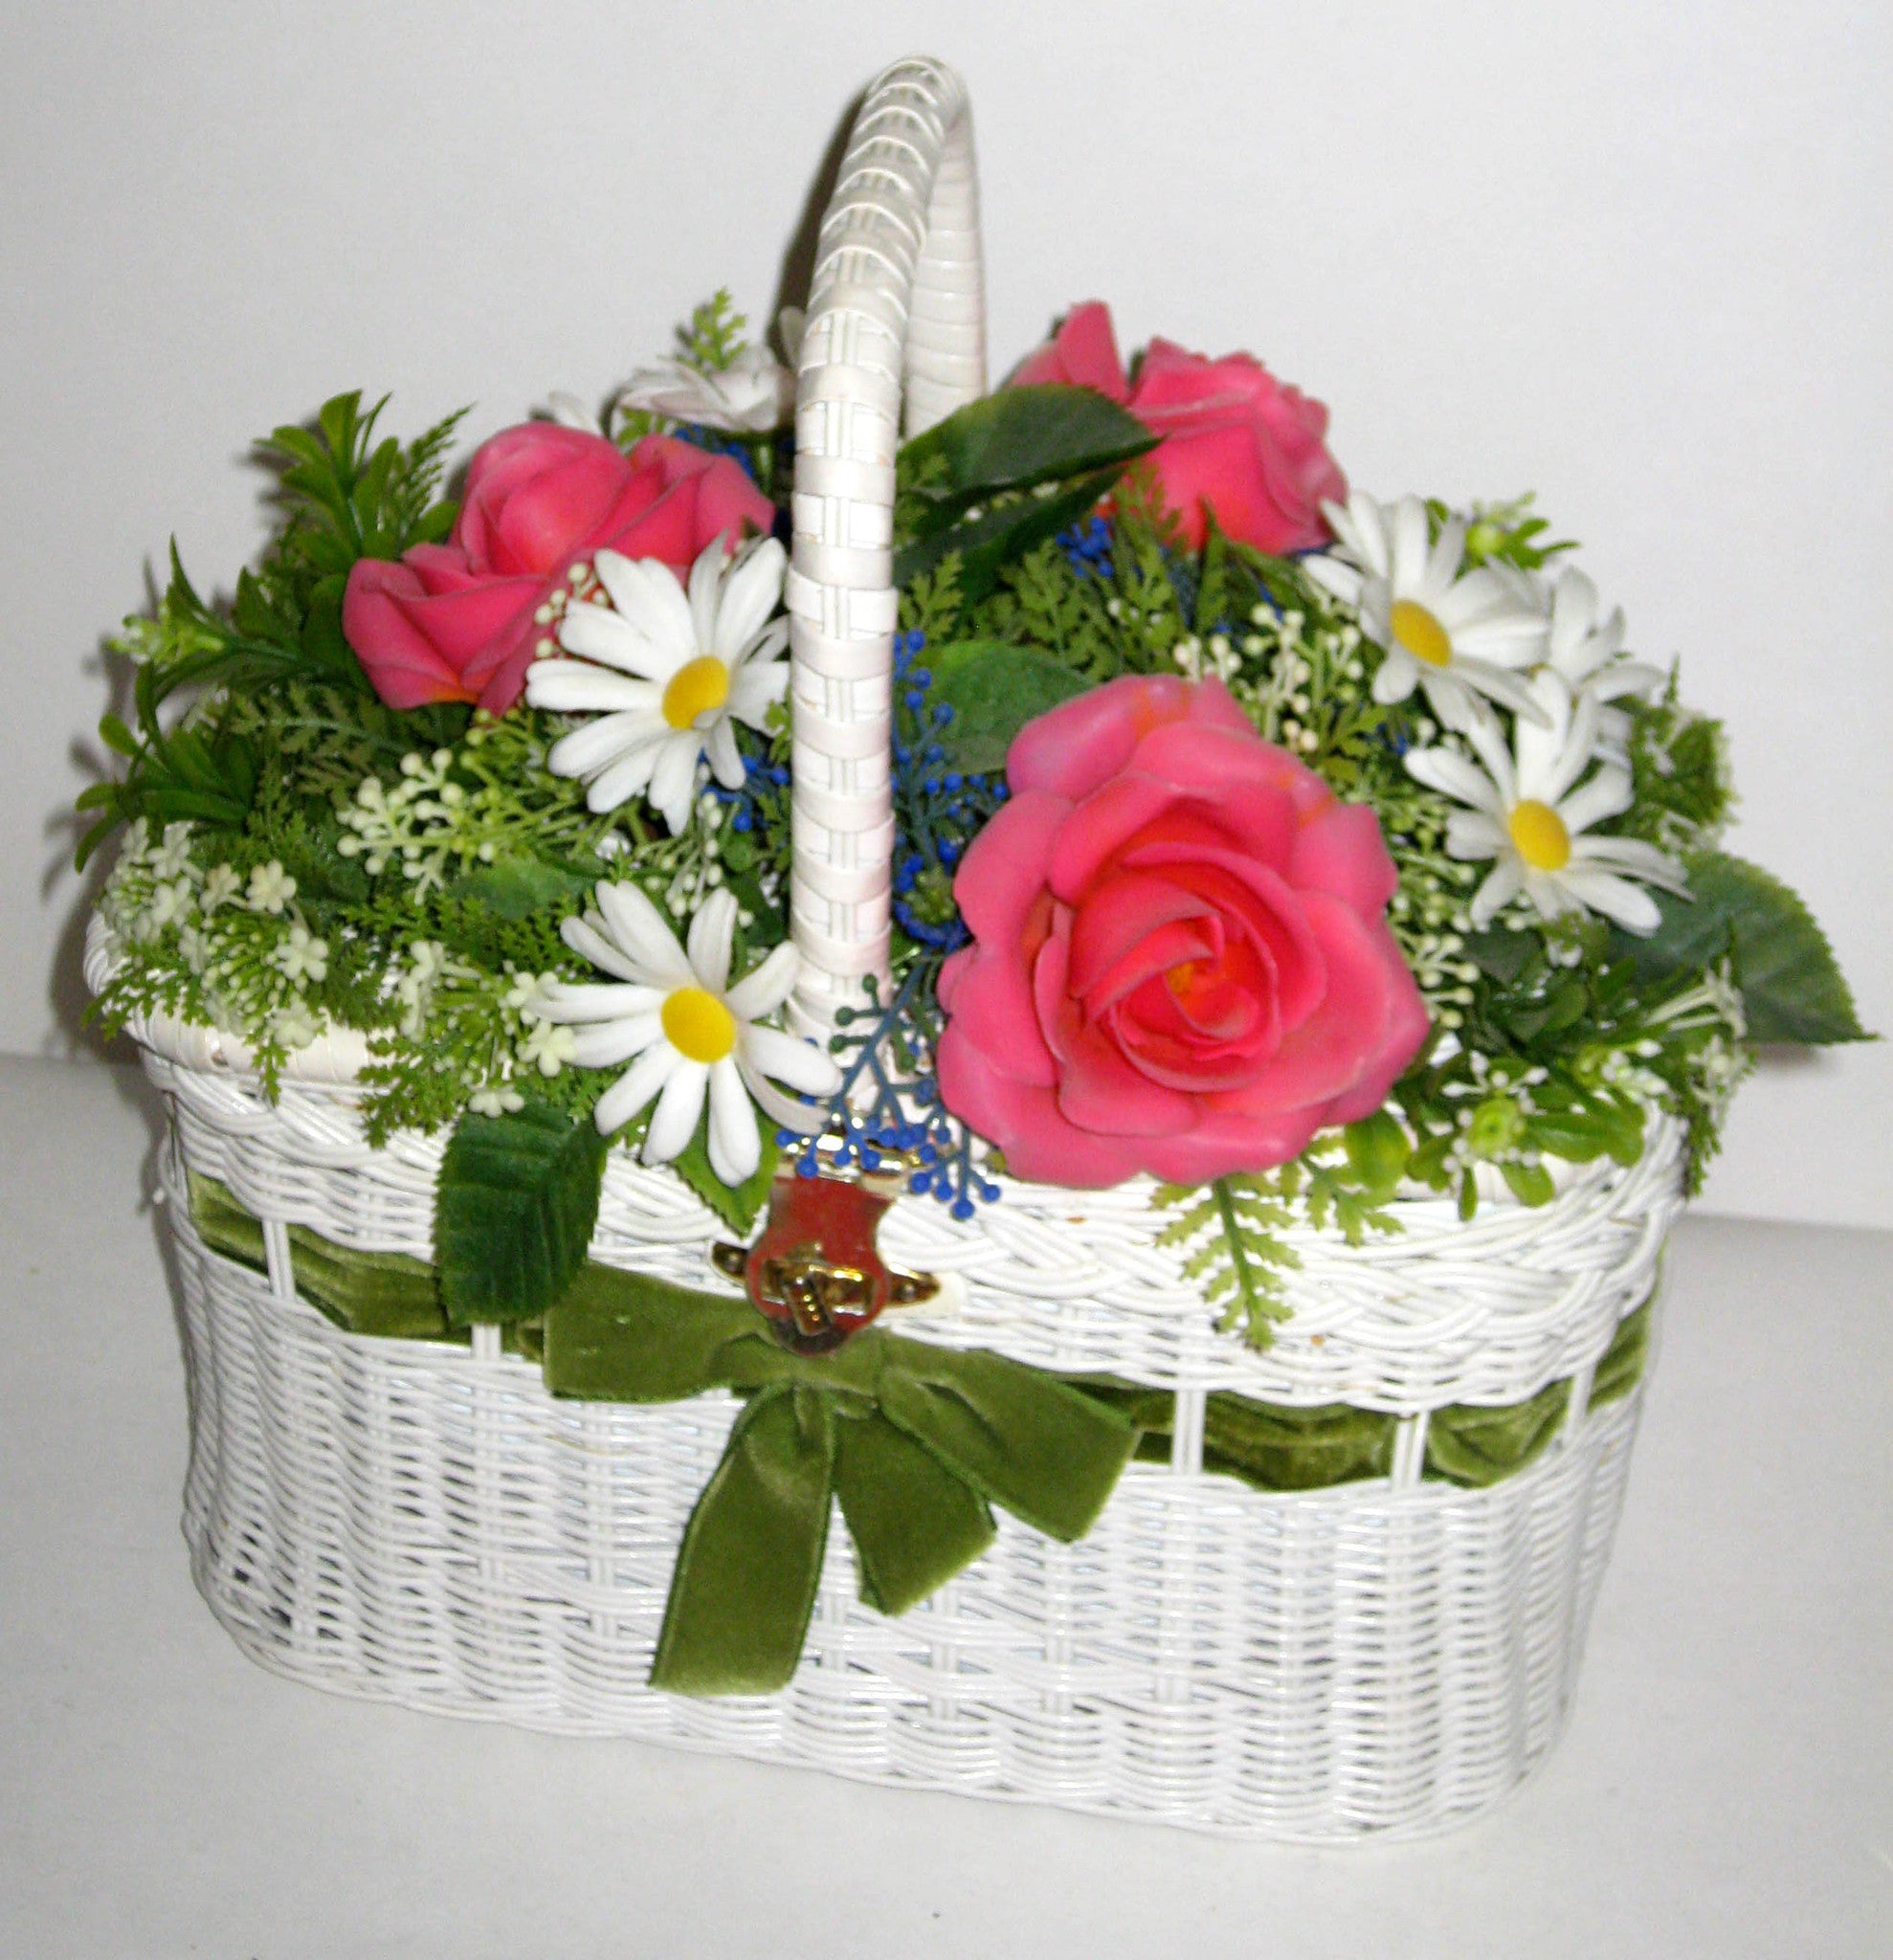 Vintage Flower Bed Wicker Basket Purse